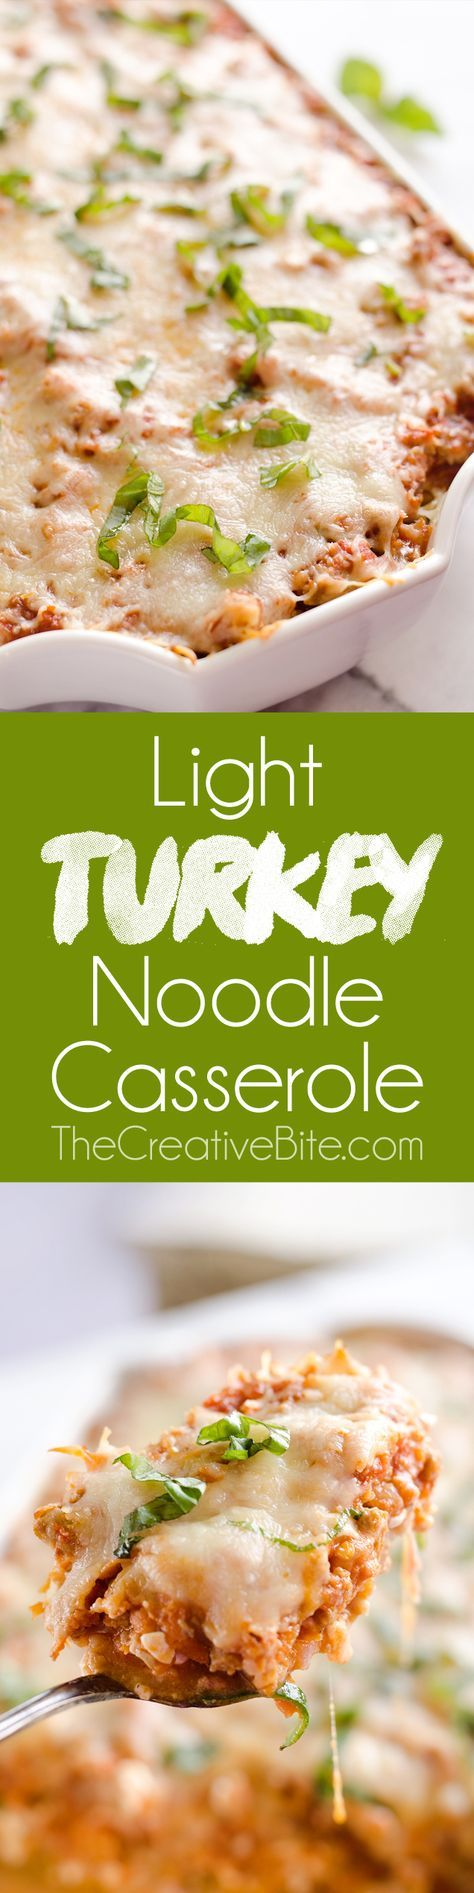 Light Turkey Noodle Casserole is a hearty and healthy dinner idea the whole family will love! All of the traditional flavors of noodle casserole are lightened up with whole wheat spaghetti, zucchini noodles and Jennie-O lean ground turkey. #MakeTheSwitch #Spon #Turkey #Dinner